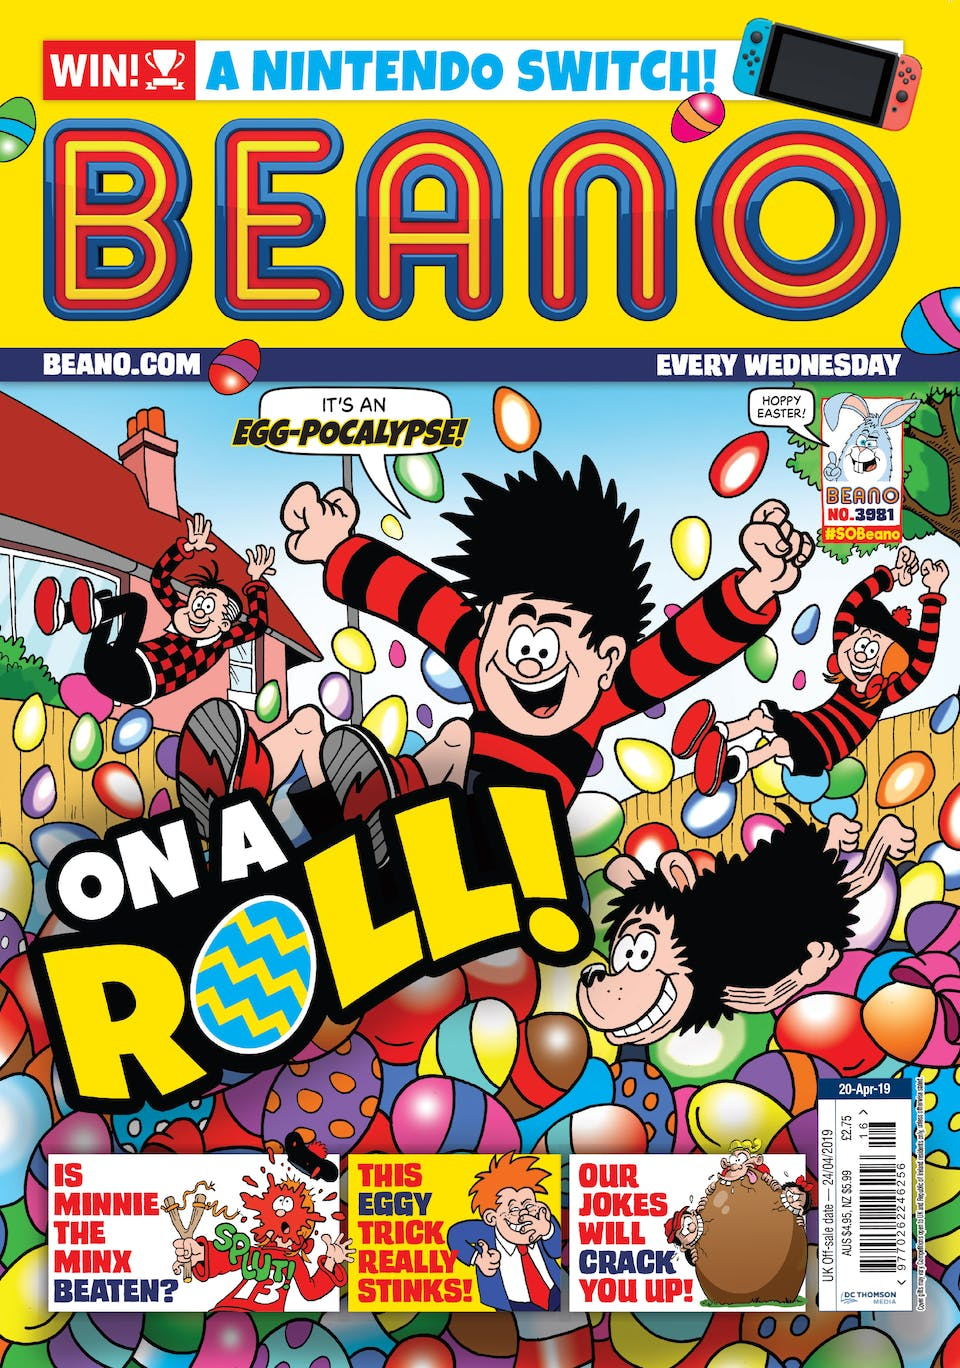 Beano no. 3981 - On a Roll!